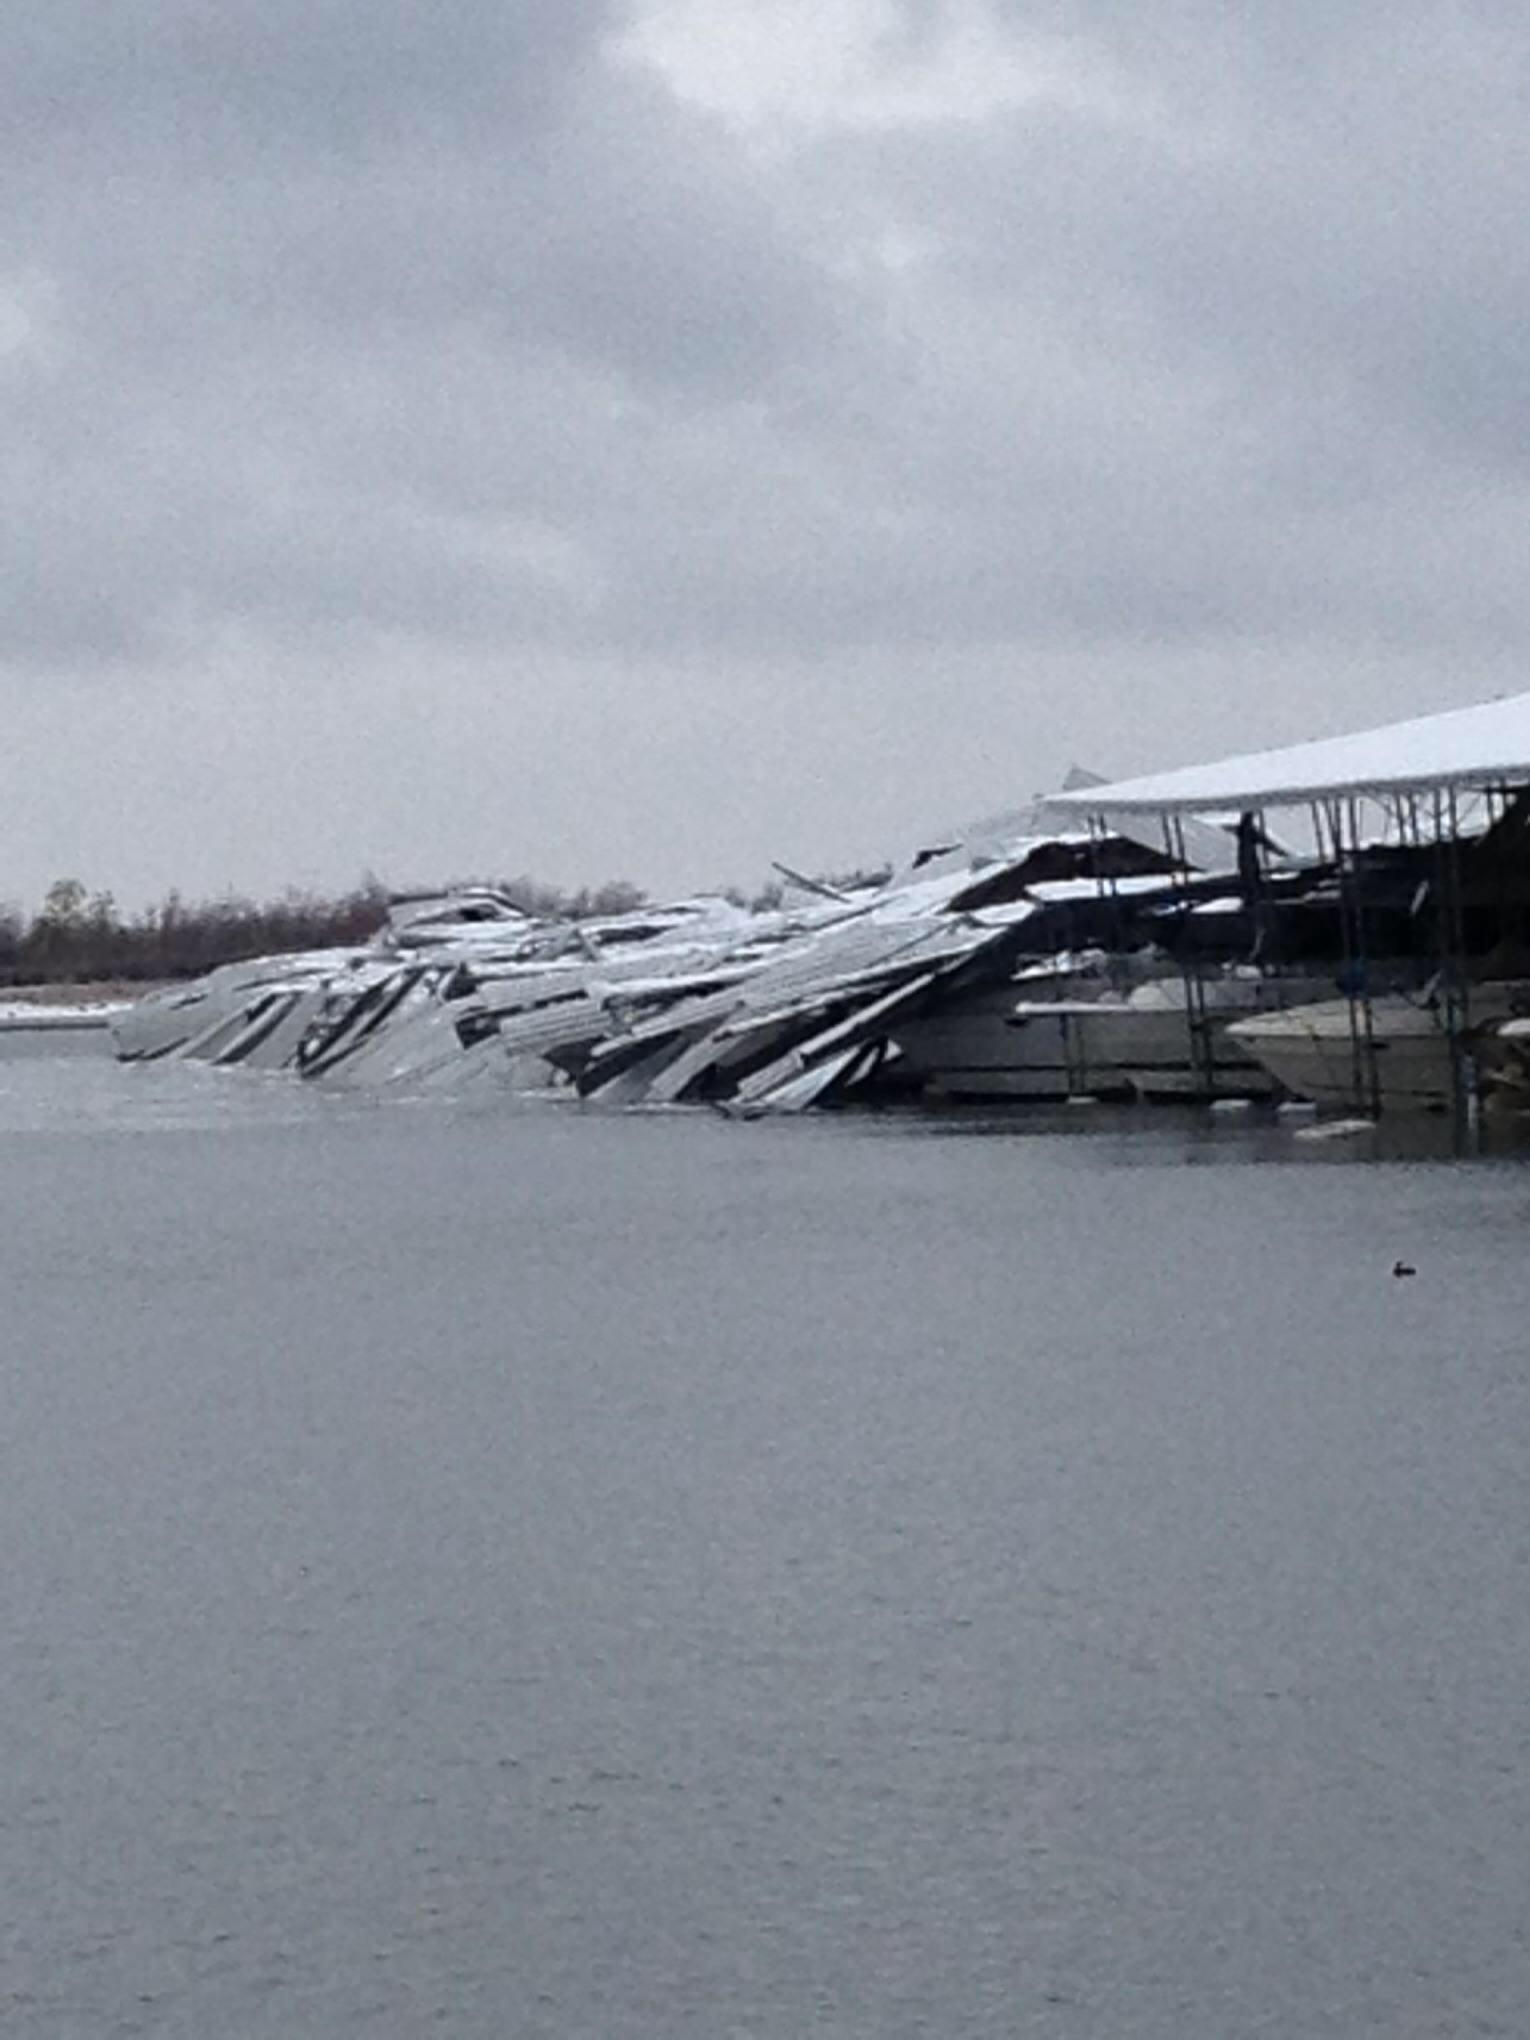 Twitter / MeredithNBC5: PIC: boats at Lake Lewisville ...